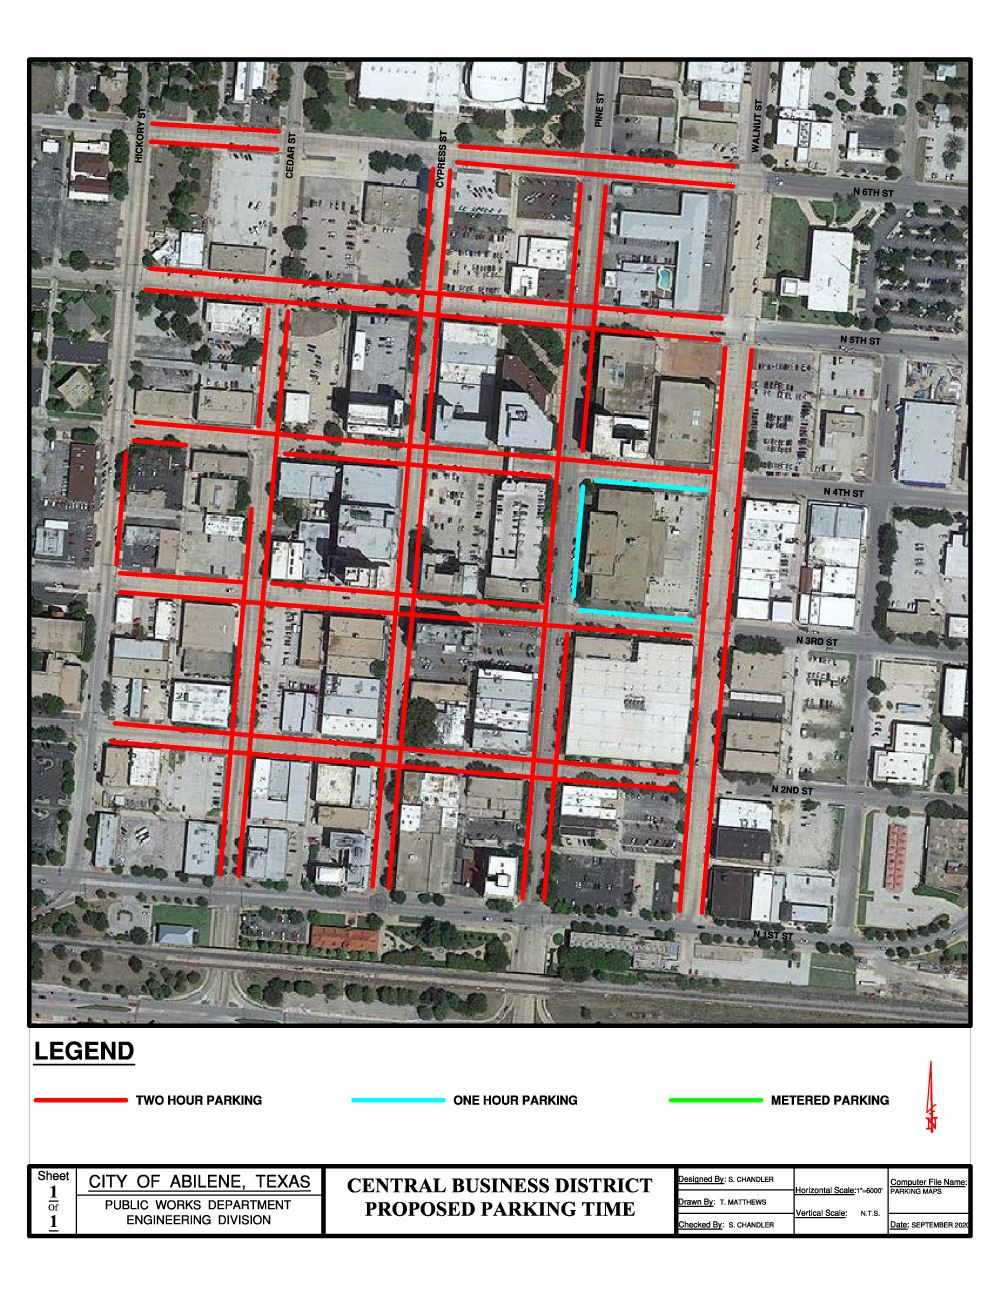 Overhead map of downtown area showing 2 and 1 hour parking areas